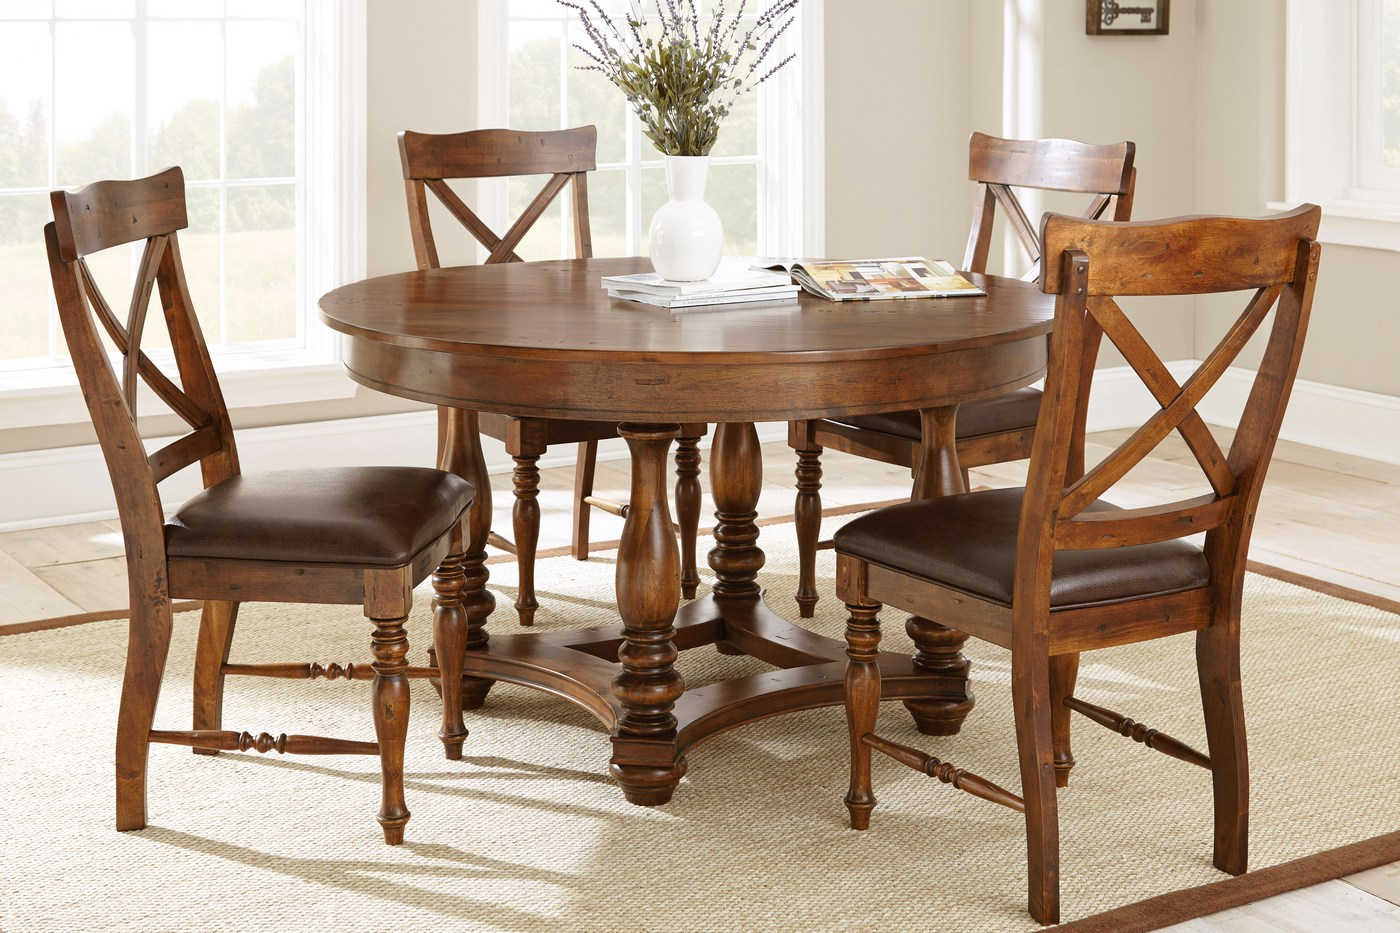 """Small Round Rustic Side Tables: Wyndham Rustic Round 54"""" Birch Dining Table In Medium Cherry"""